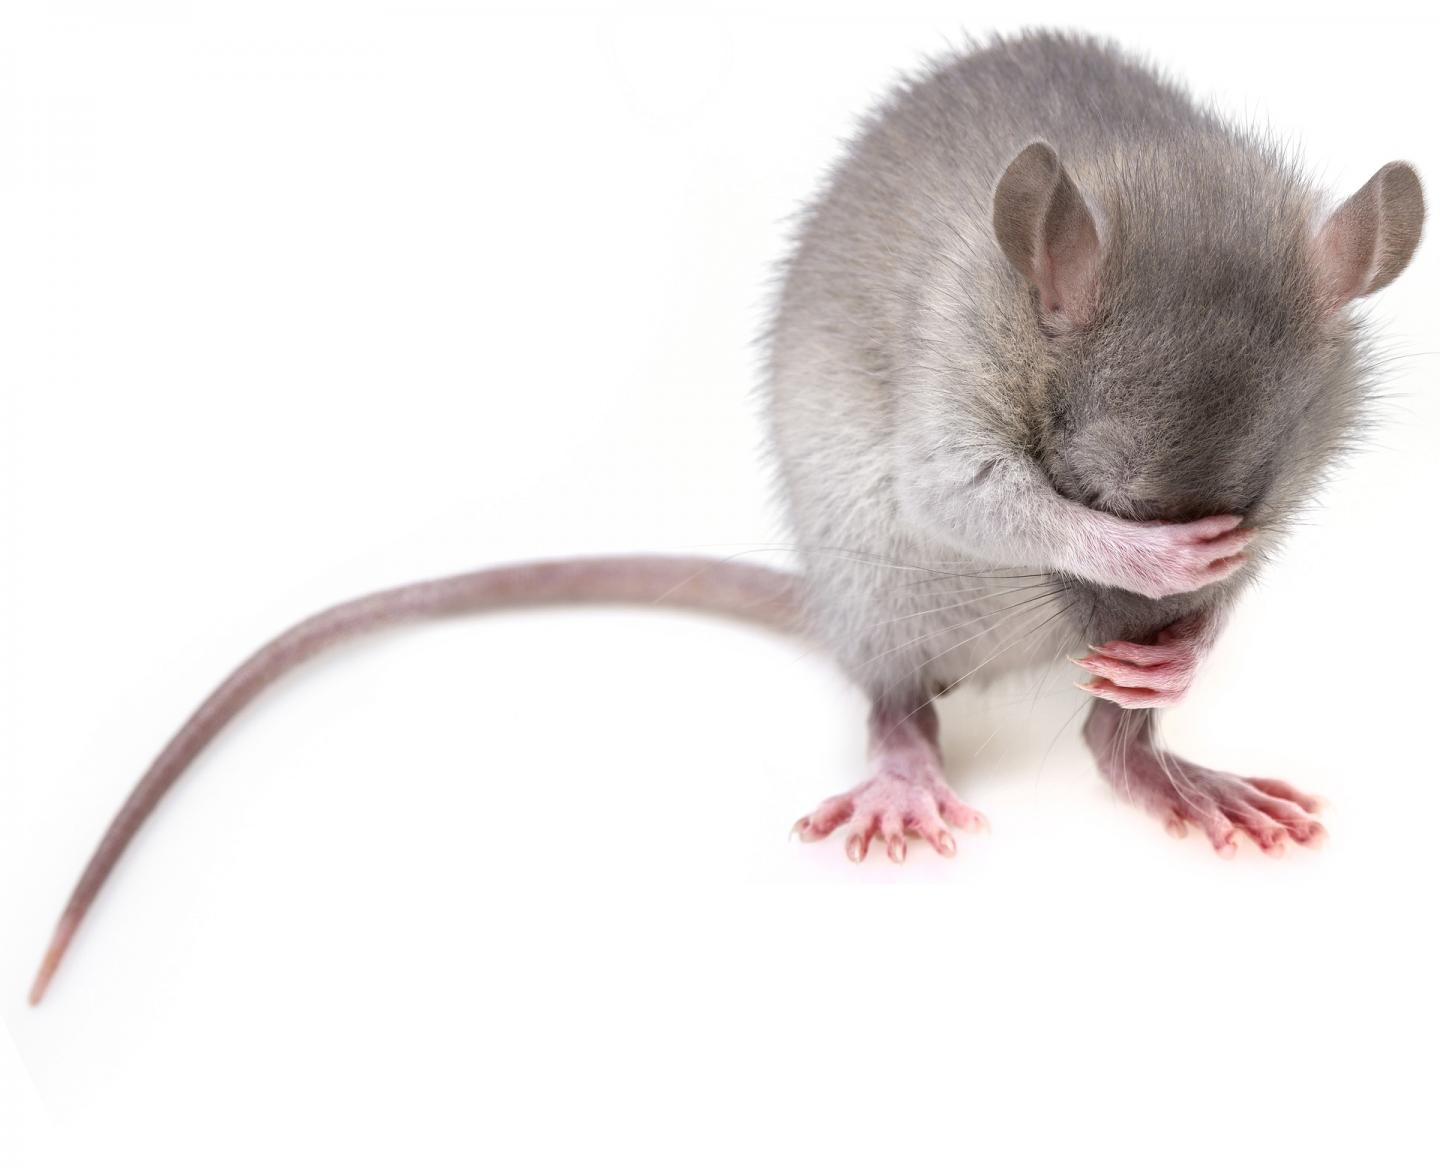 """Research papers that omit """"mice"""" from titles receive misleading media coverage"""